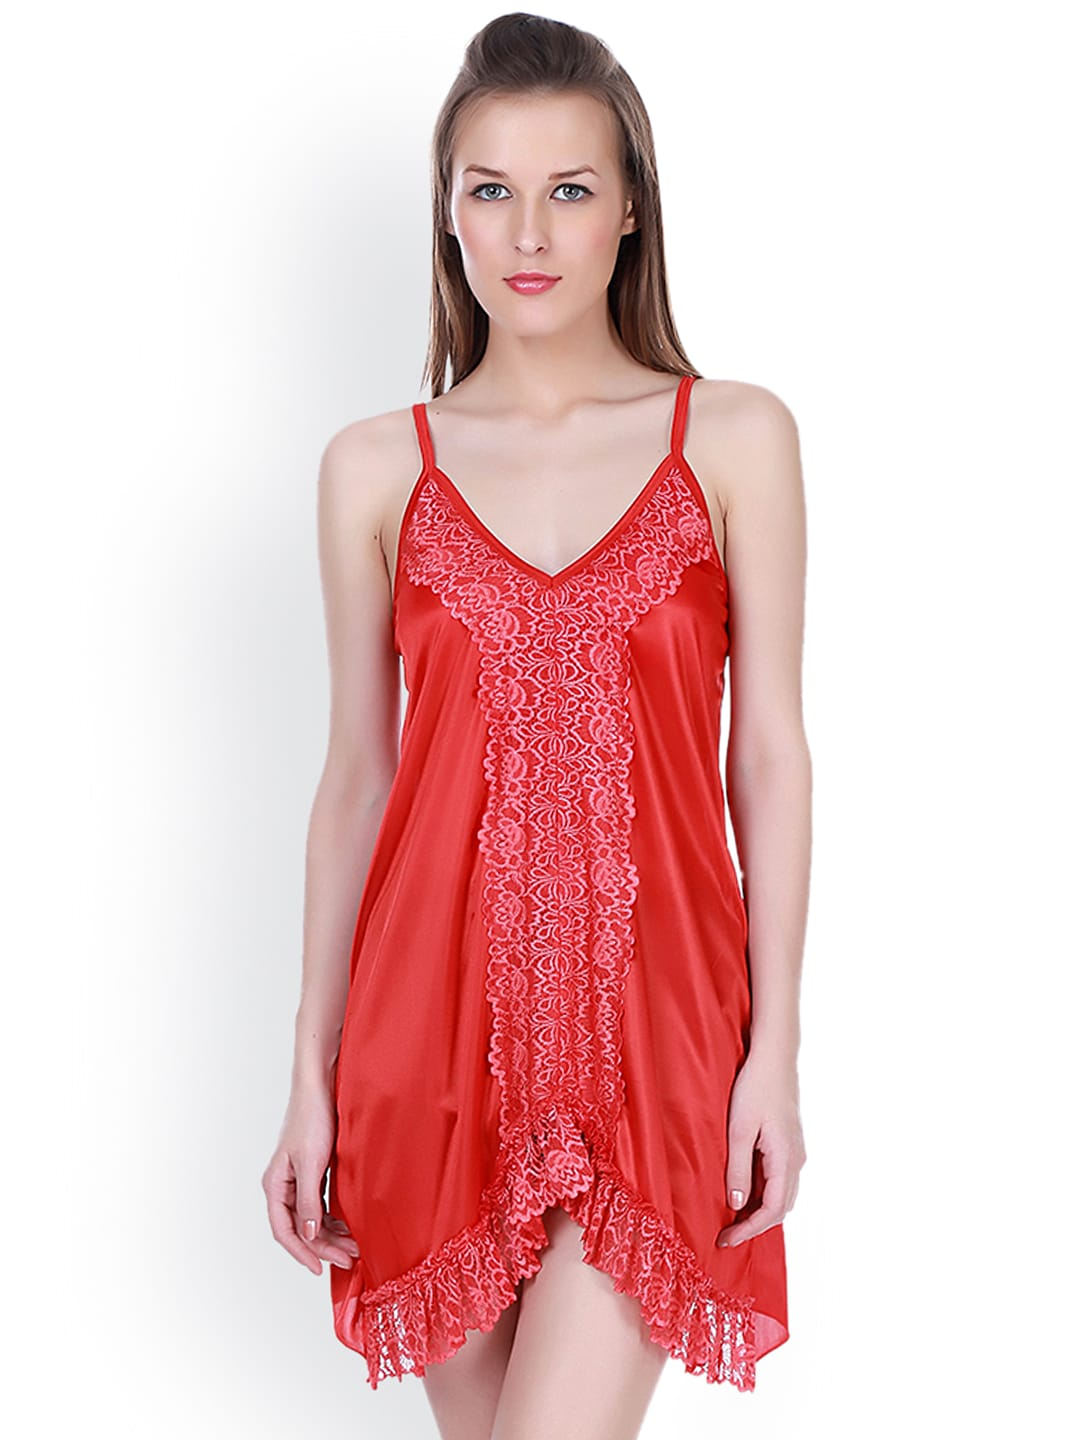 Claura Red Baby-Doll Nightdress CL-30